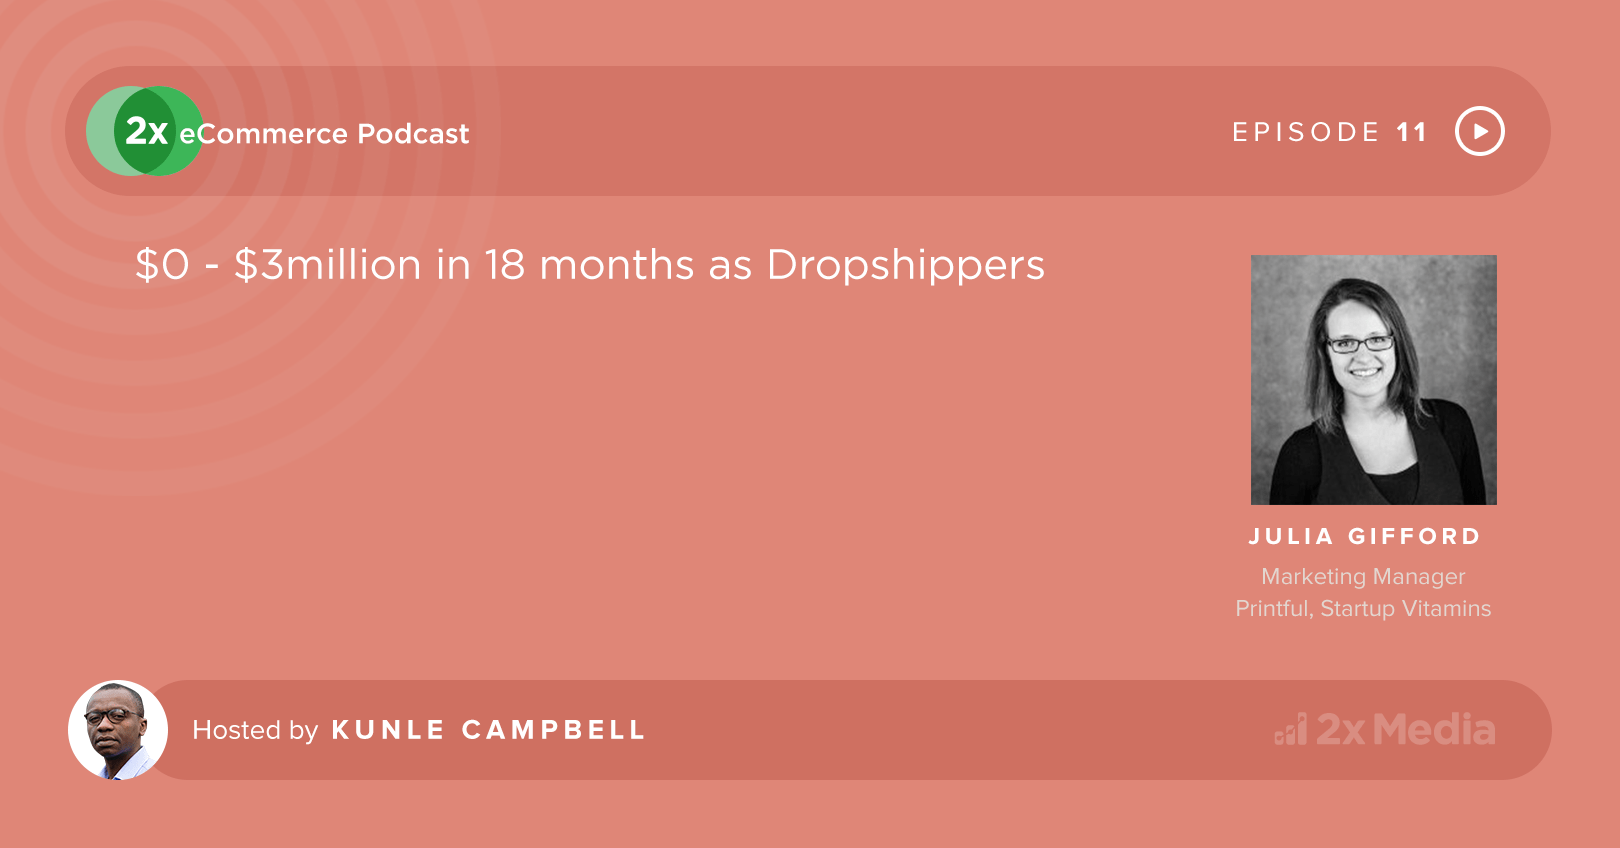 dbffb494 Printful.com, $3 Million Revenue in only 18 Months as Dropshippers – Rapid  Growth!